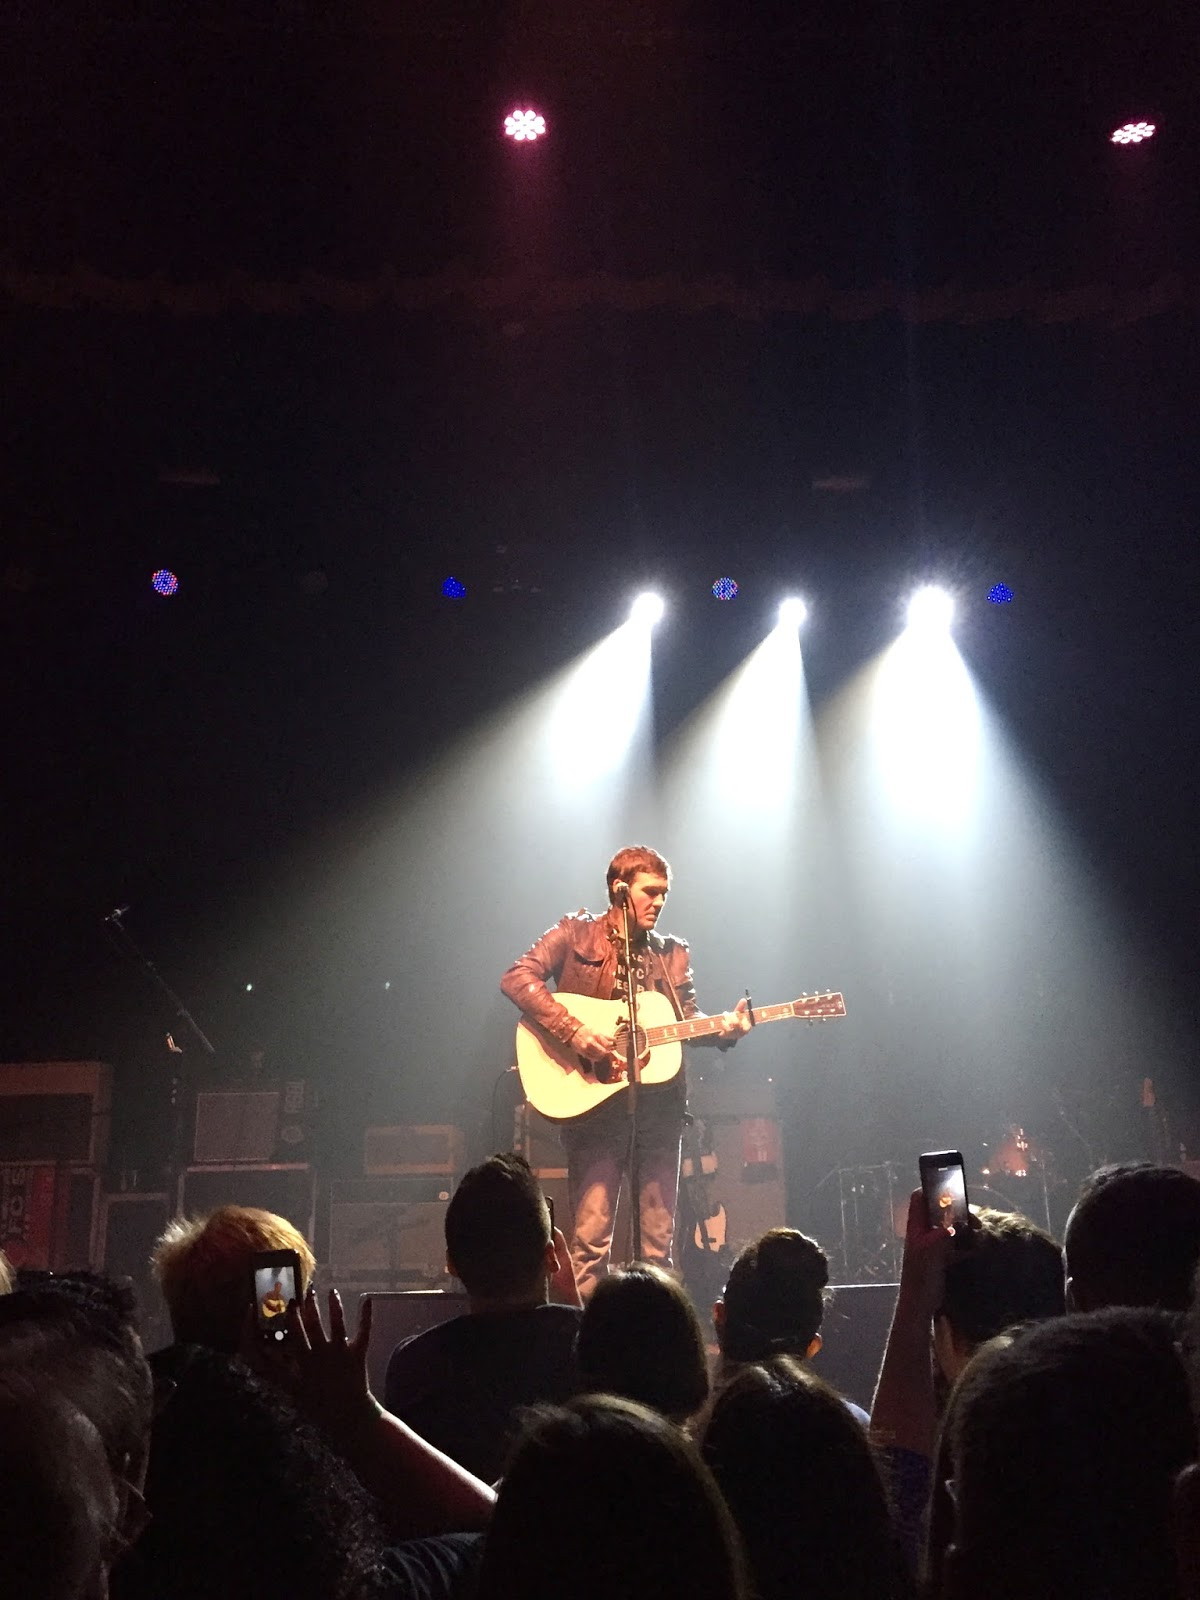 Brian Fallon at Royale - how to spend 36 hours in Boston